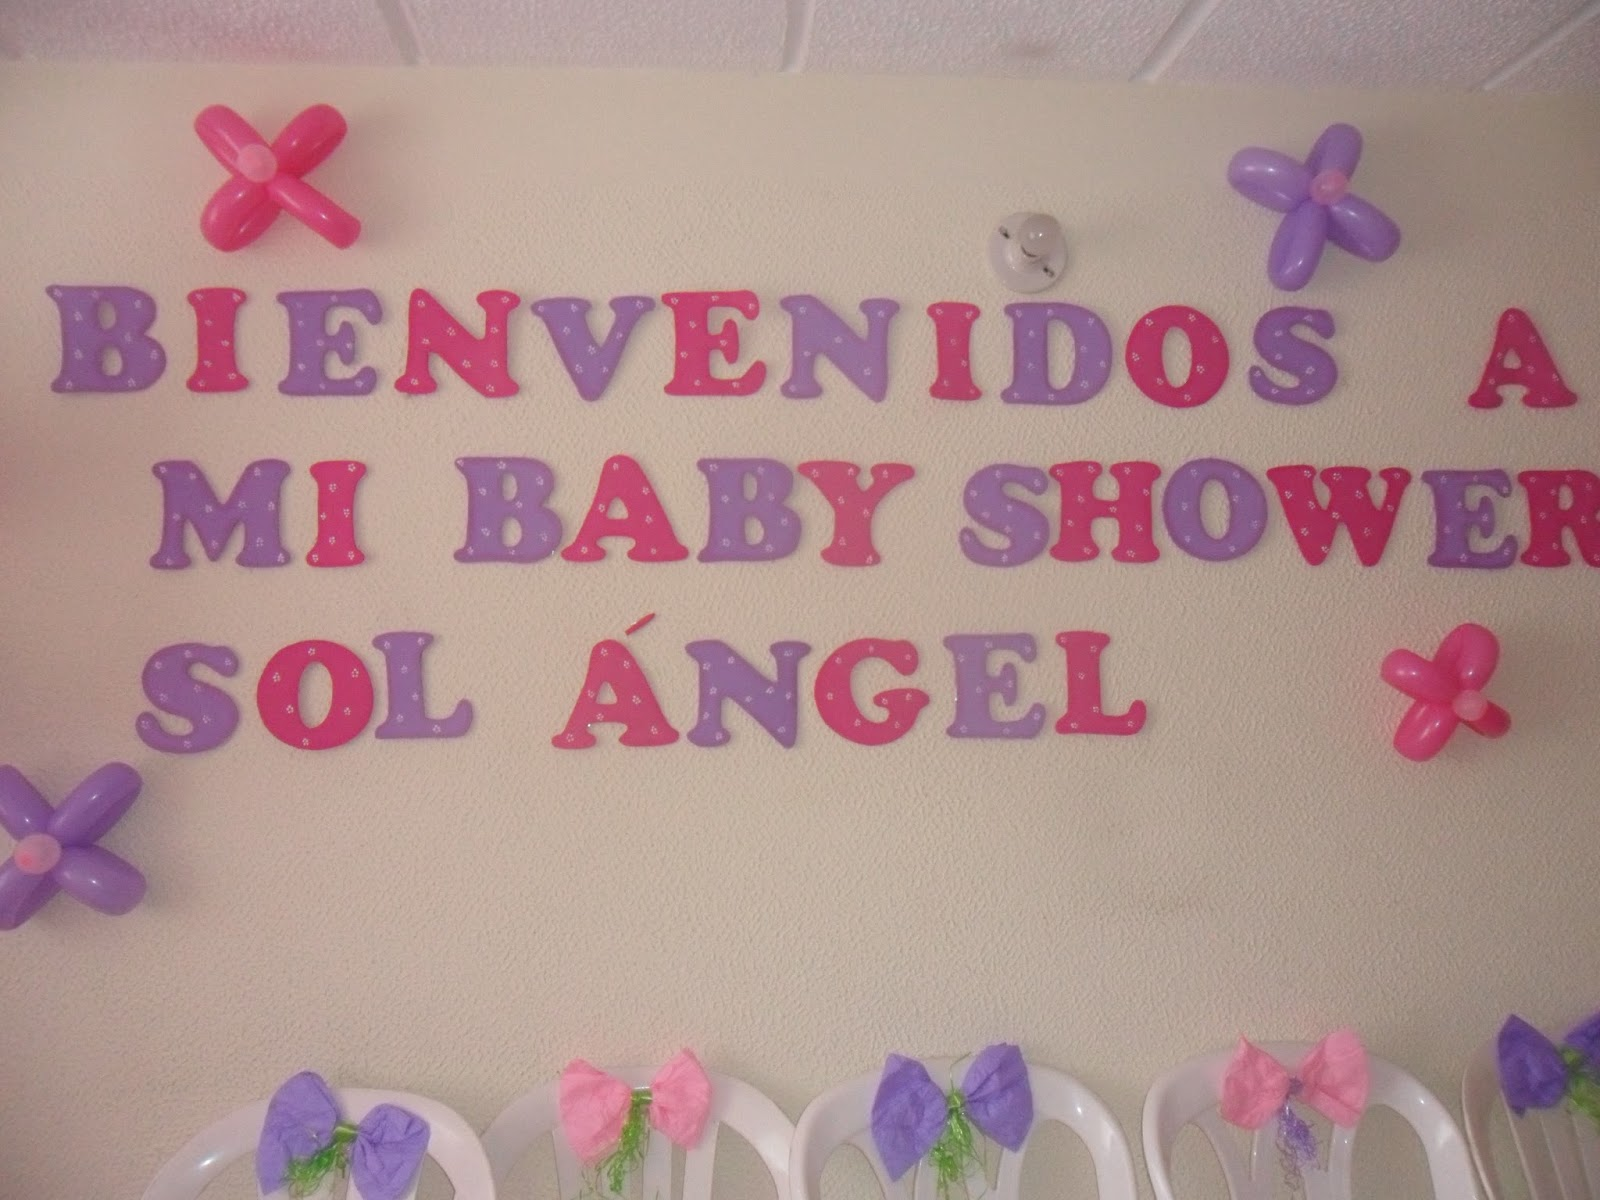 Decoracion Para Fiesta De Baby Shower.Fiestas De Baby Shower